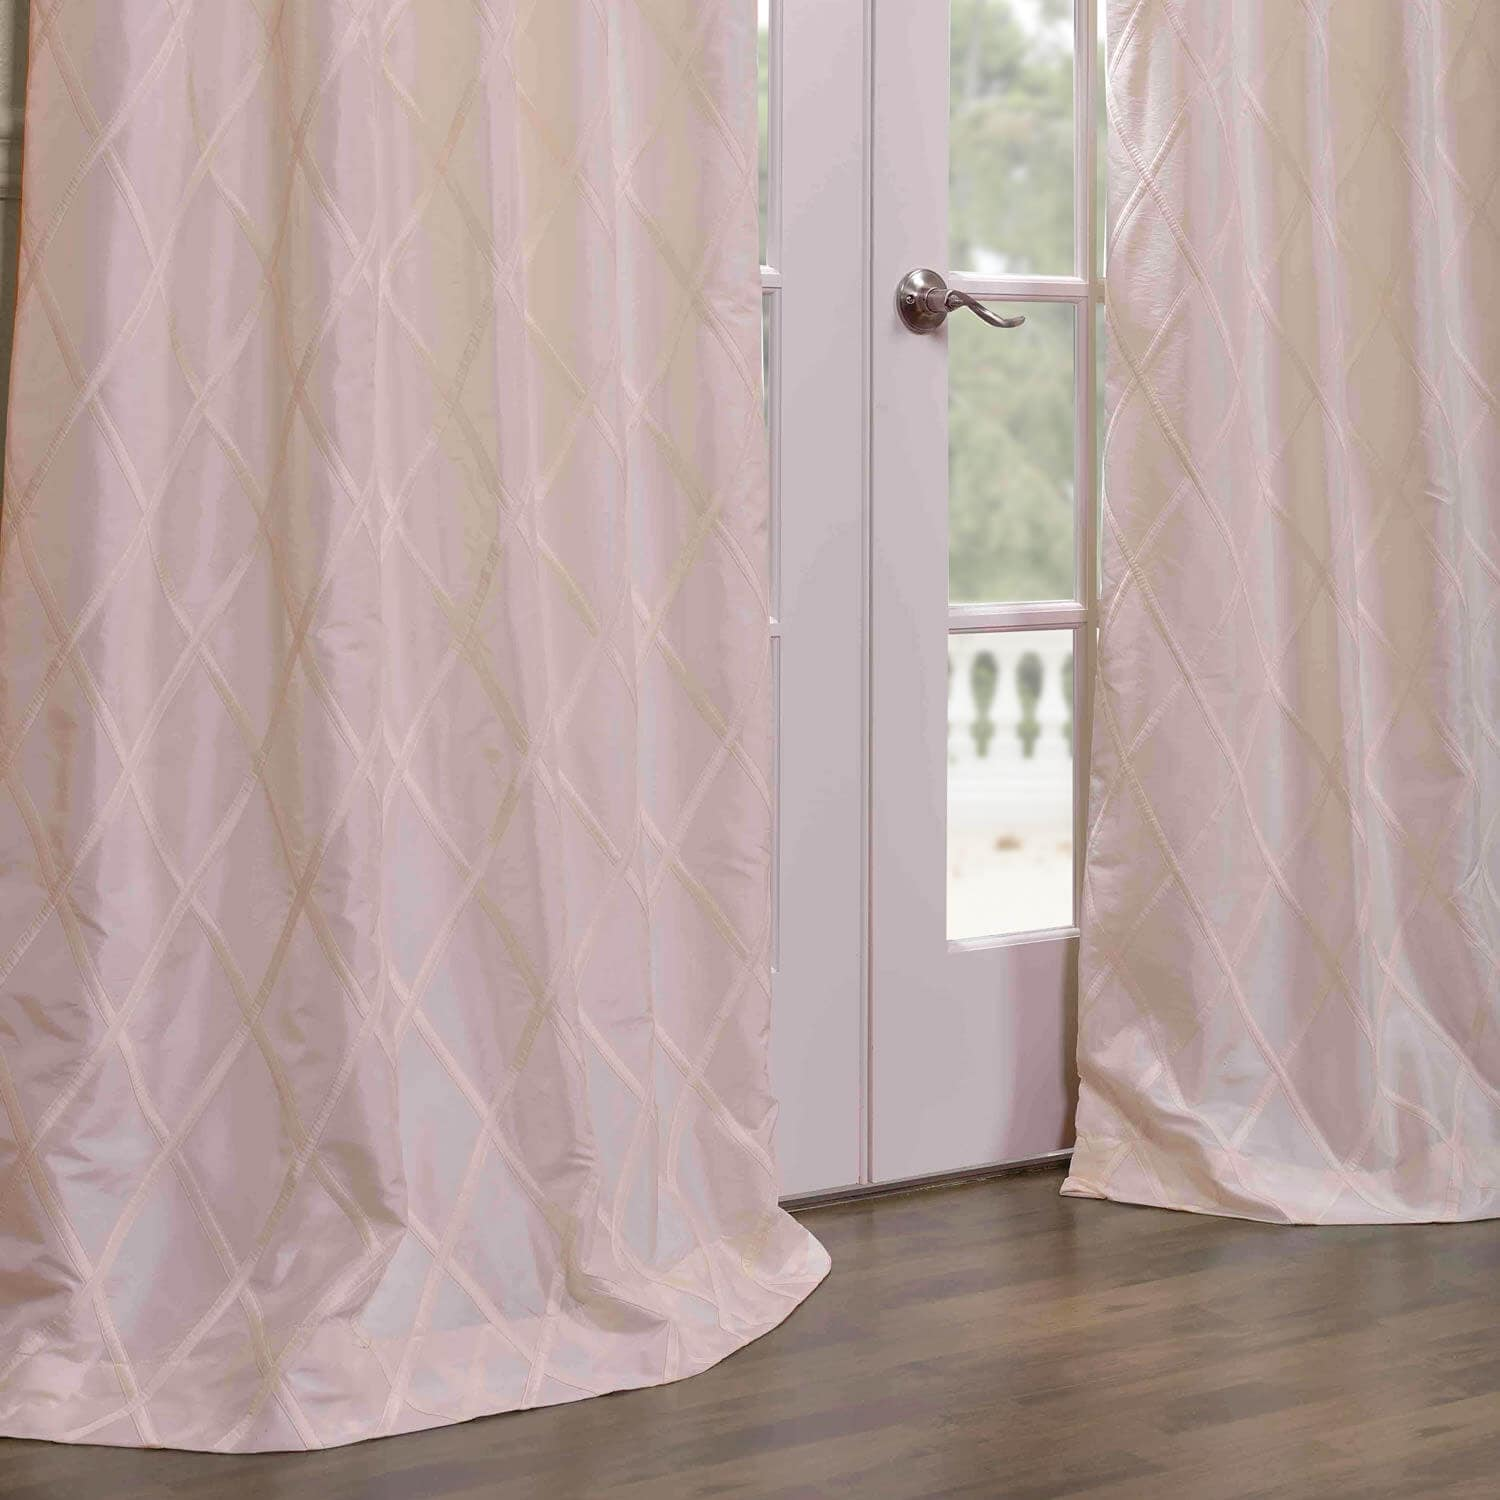 Get Alexandria f White Taffeta Faux Silk Curtains